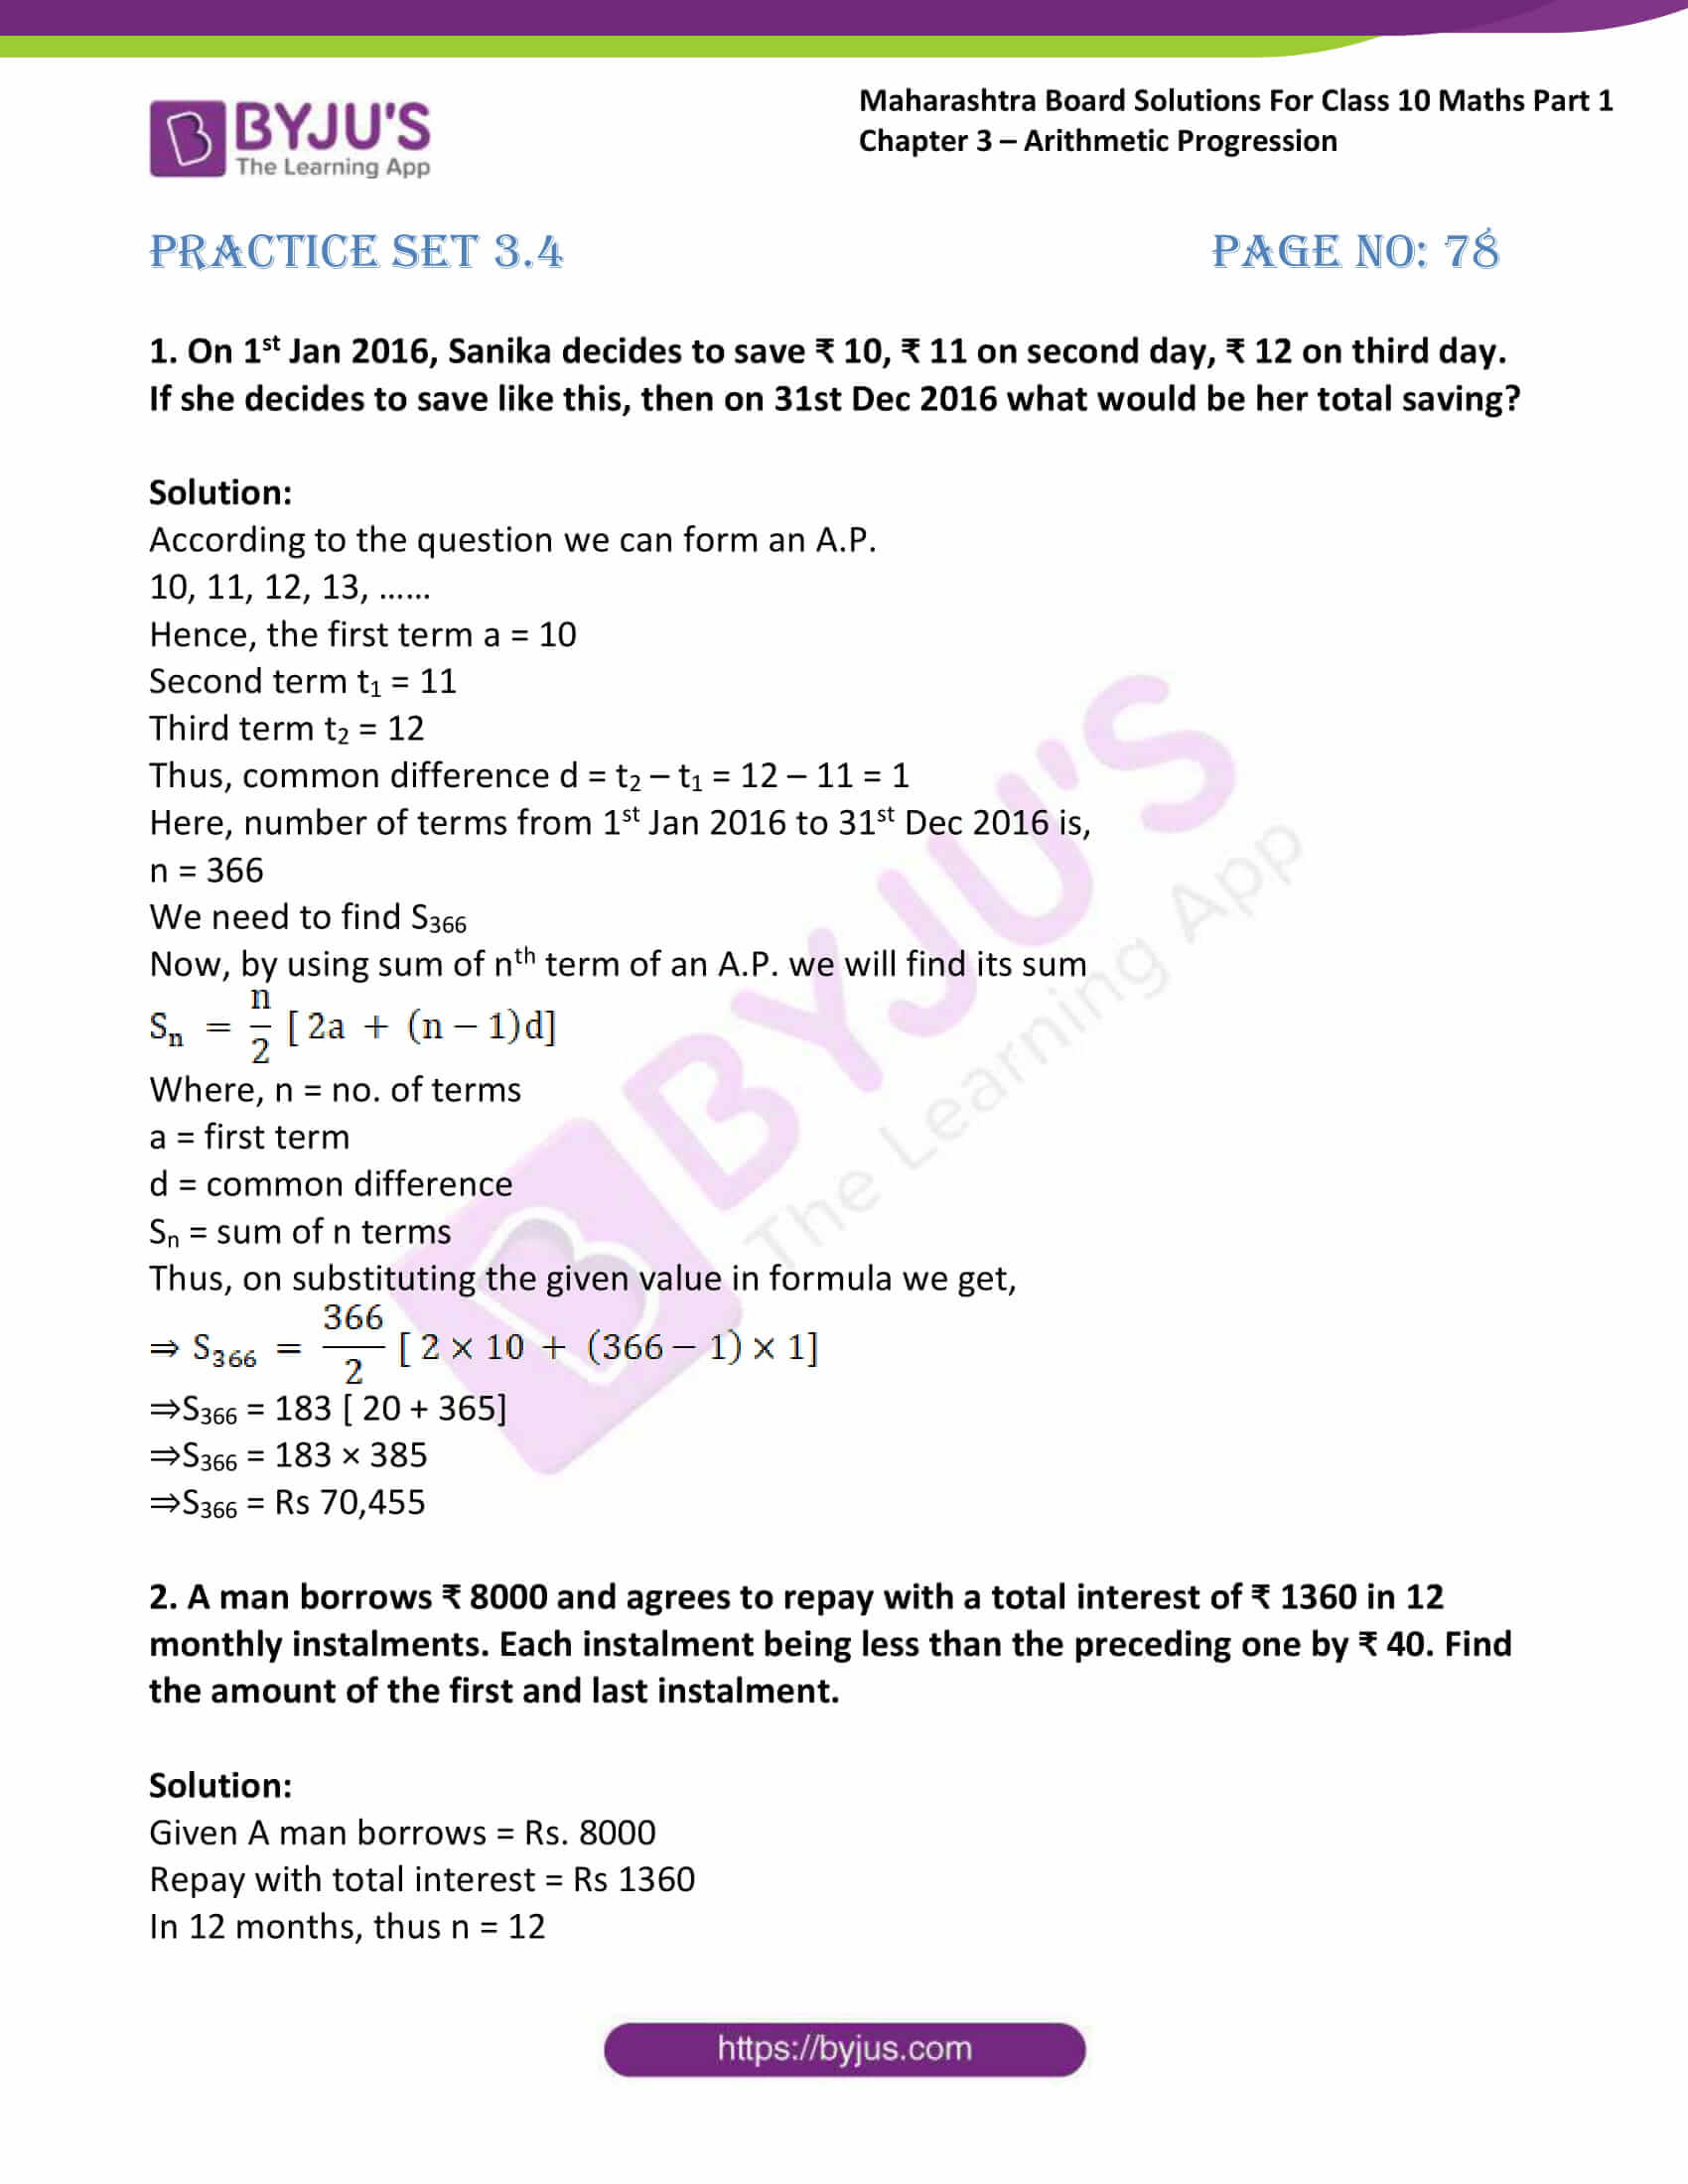 msbshse solutions class 10 maths part 1 chapter 3 25